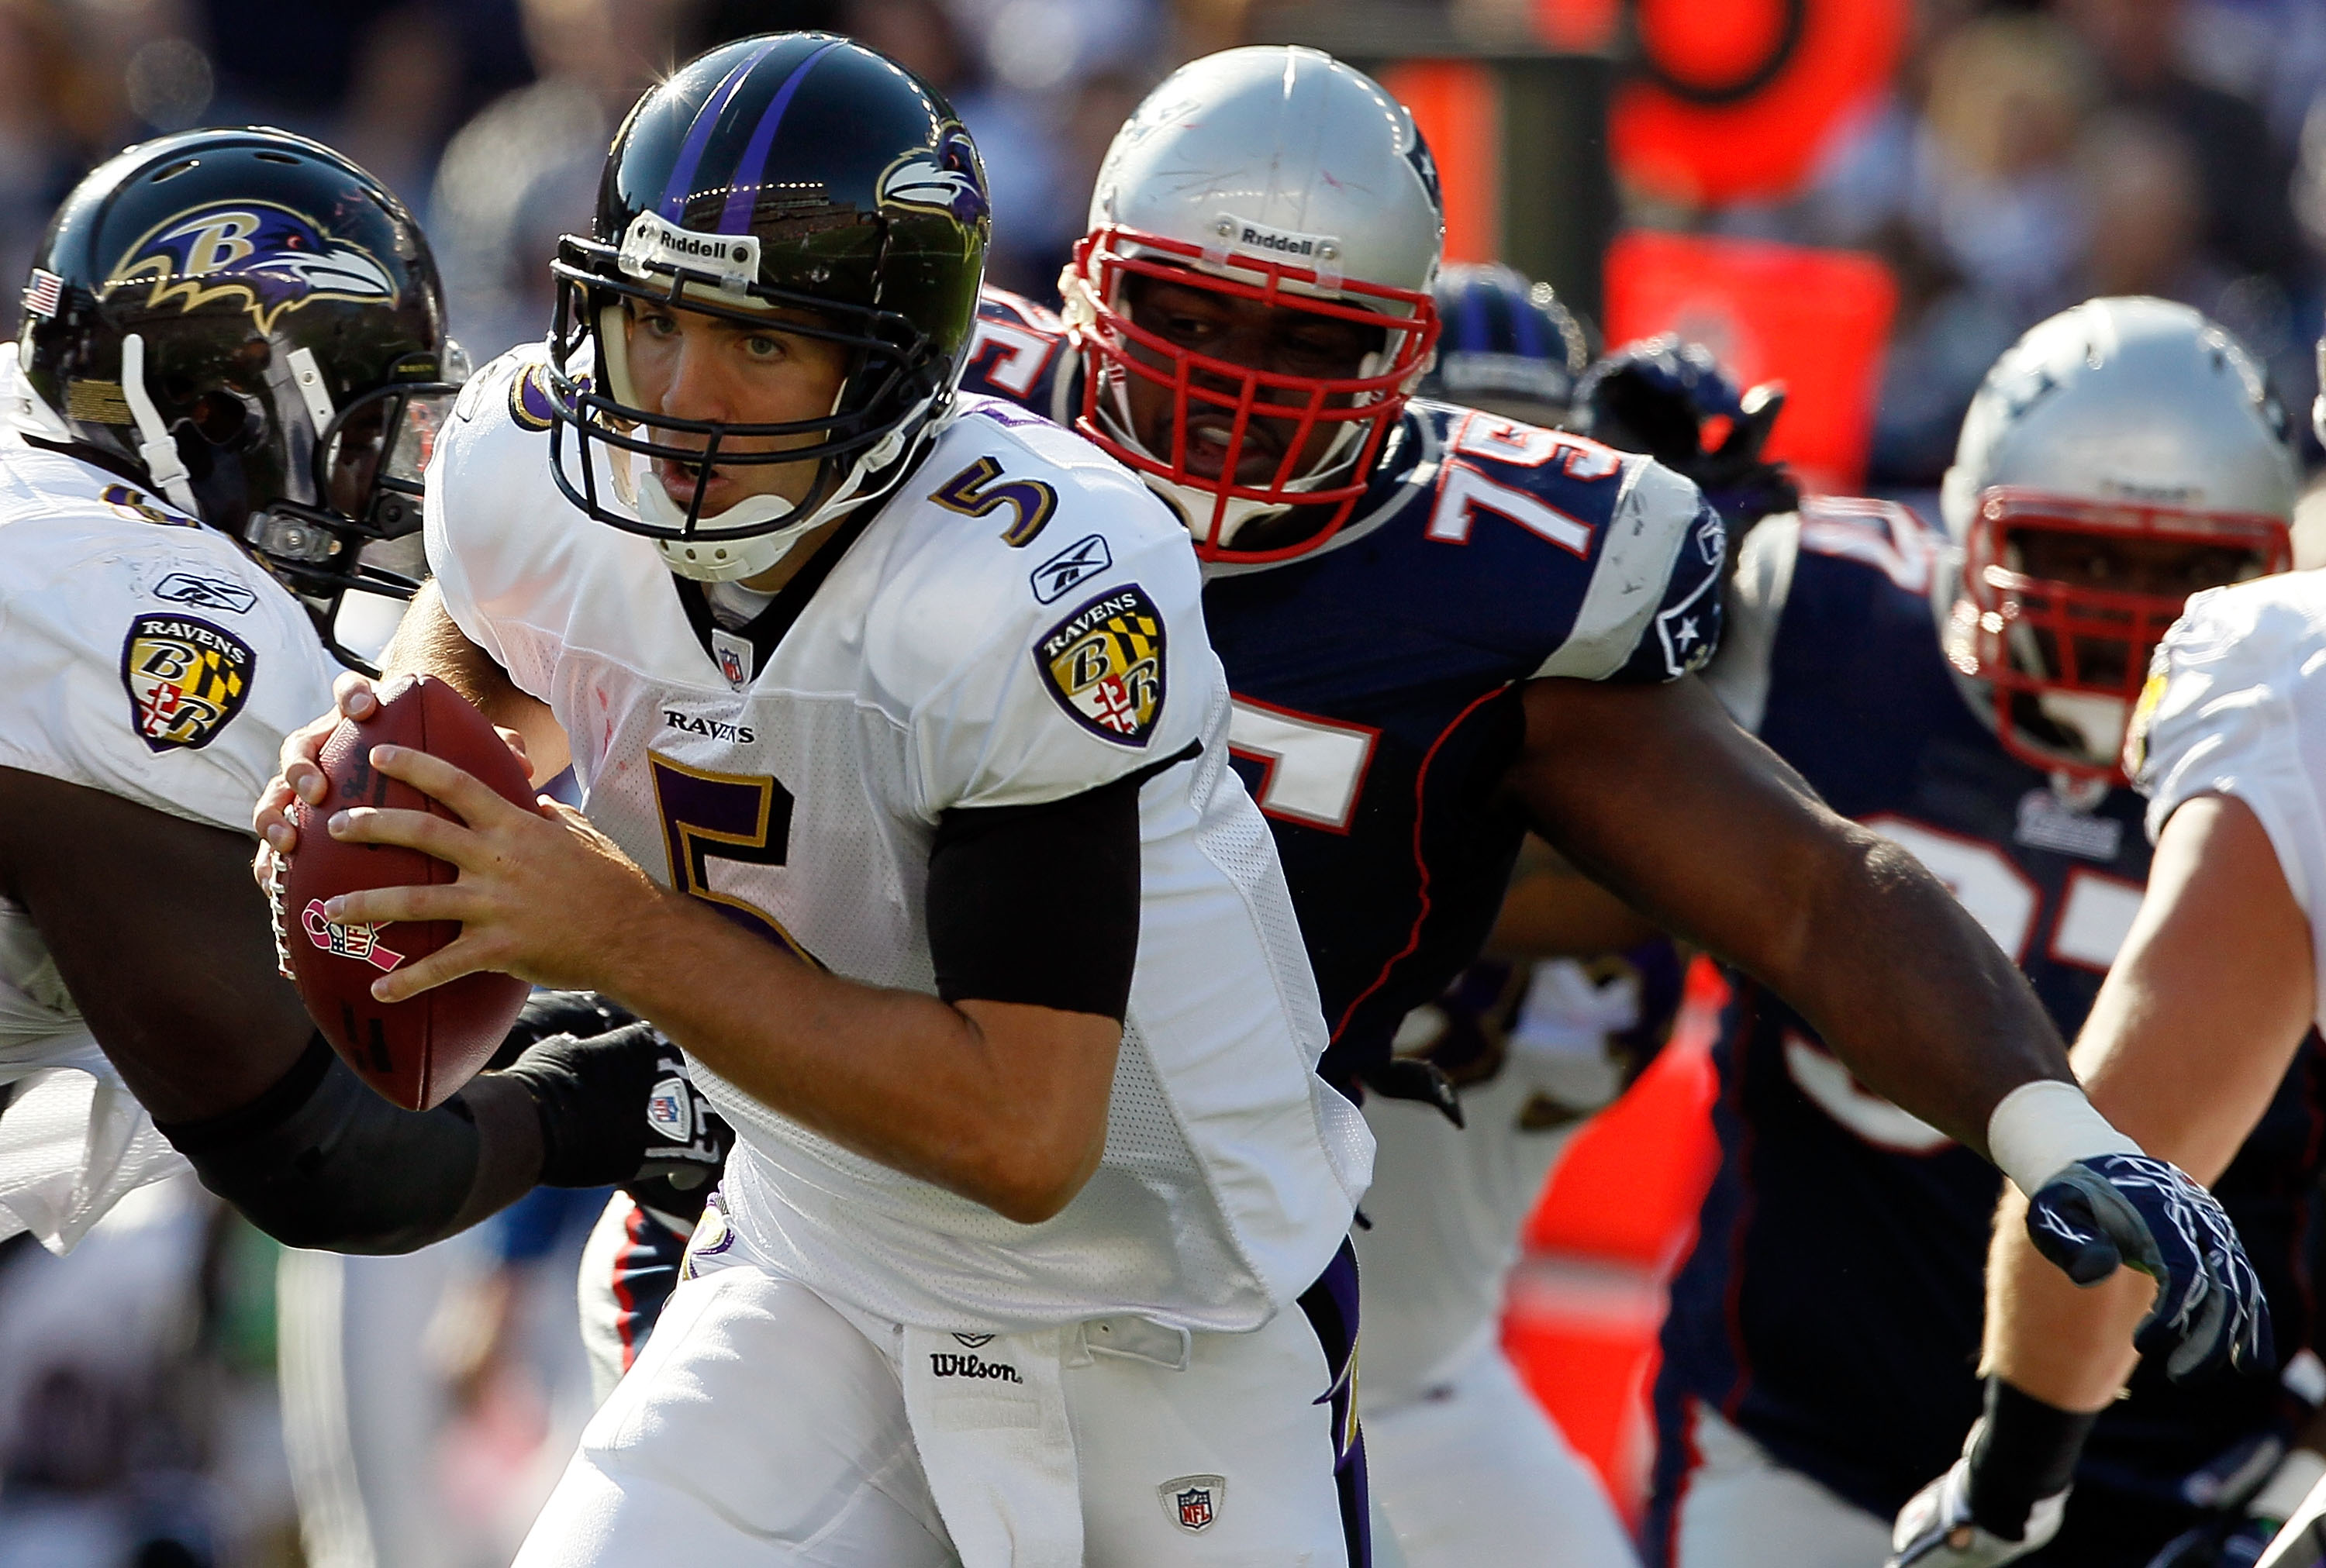 FOXBORO, MA - OCTOBER 17:  Vince Wilfork #75 of the New England Patriots chases Joe Flacco #5 of the Baltimore Ravens in the first half at Gillette Stadium on October 17, 2010 in Foxboro, Massachusetts. The Patriot won 23-20 in overtime.  (Photo by Jim Ro